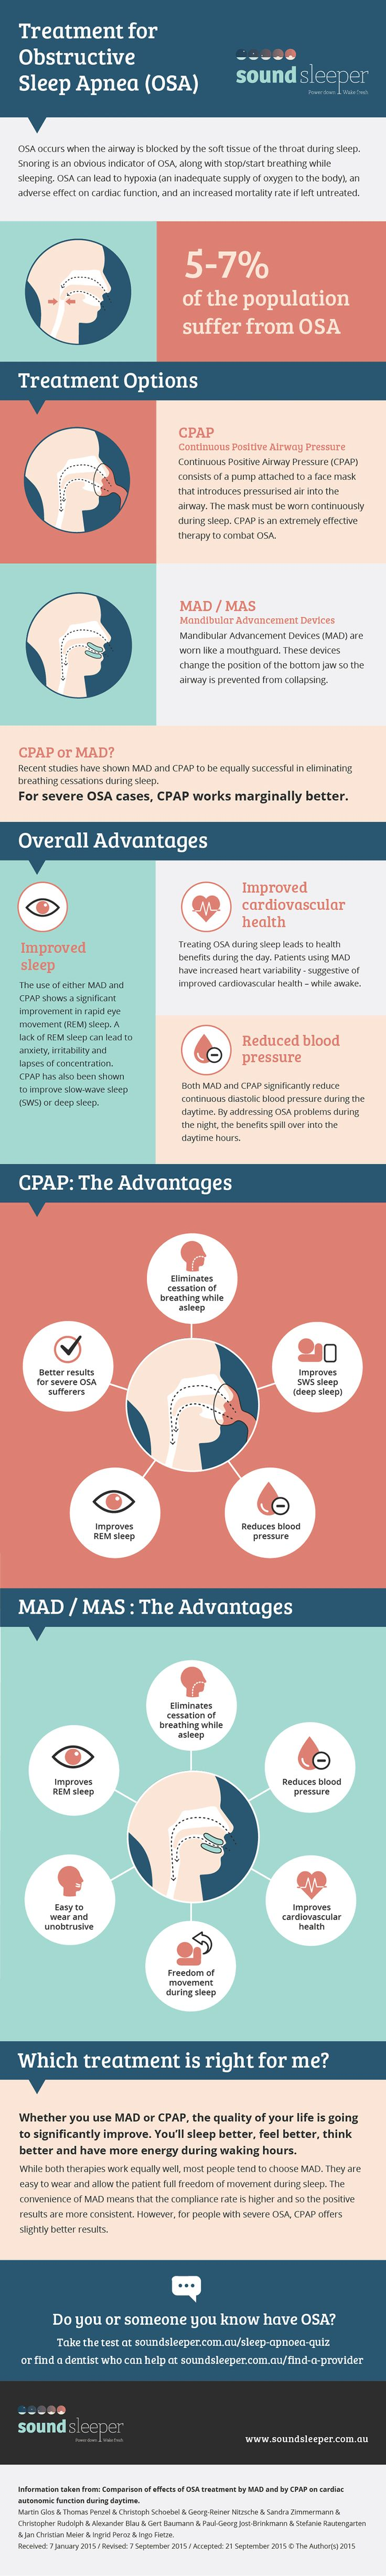 This infographic has been designed by Sound Sleeper to create awareness for people who are unfamiliar with the symptom signs of Obstructive Sleep Apnoea and help them get a better sleep for life.